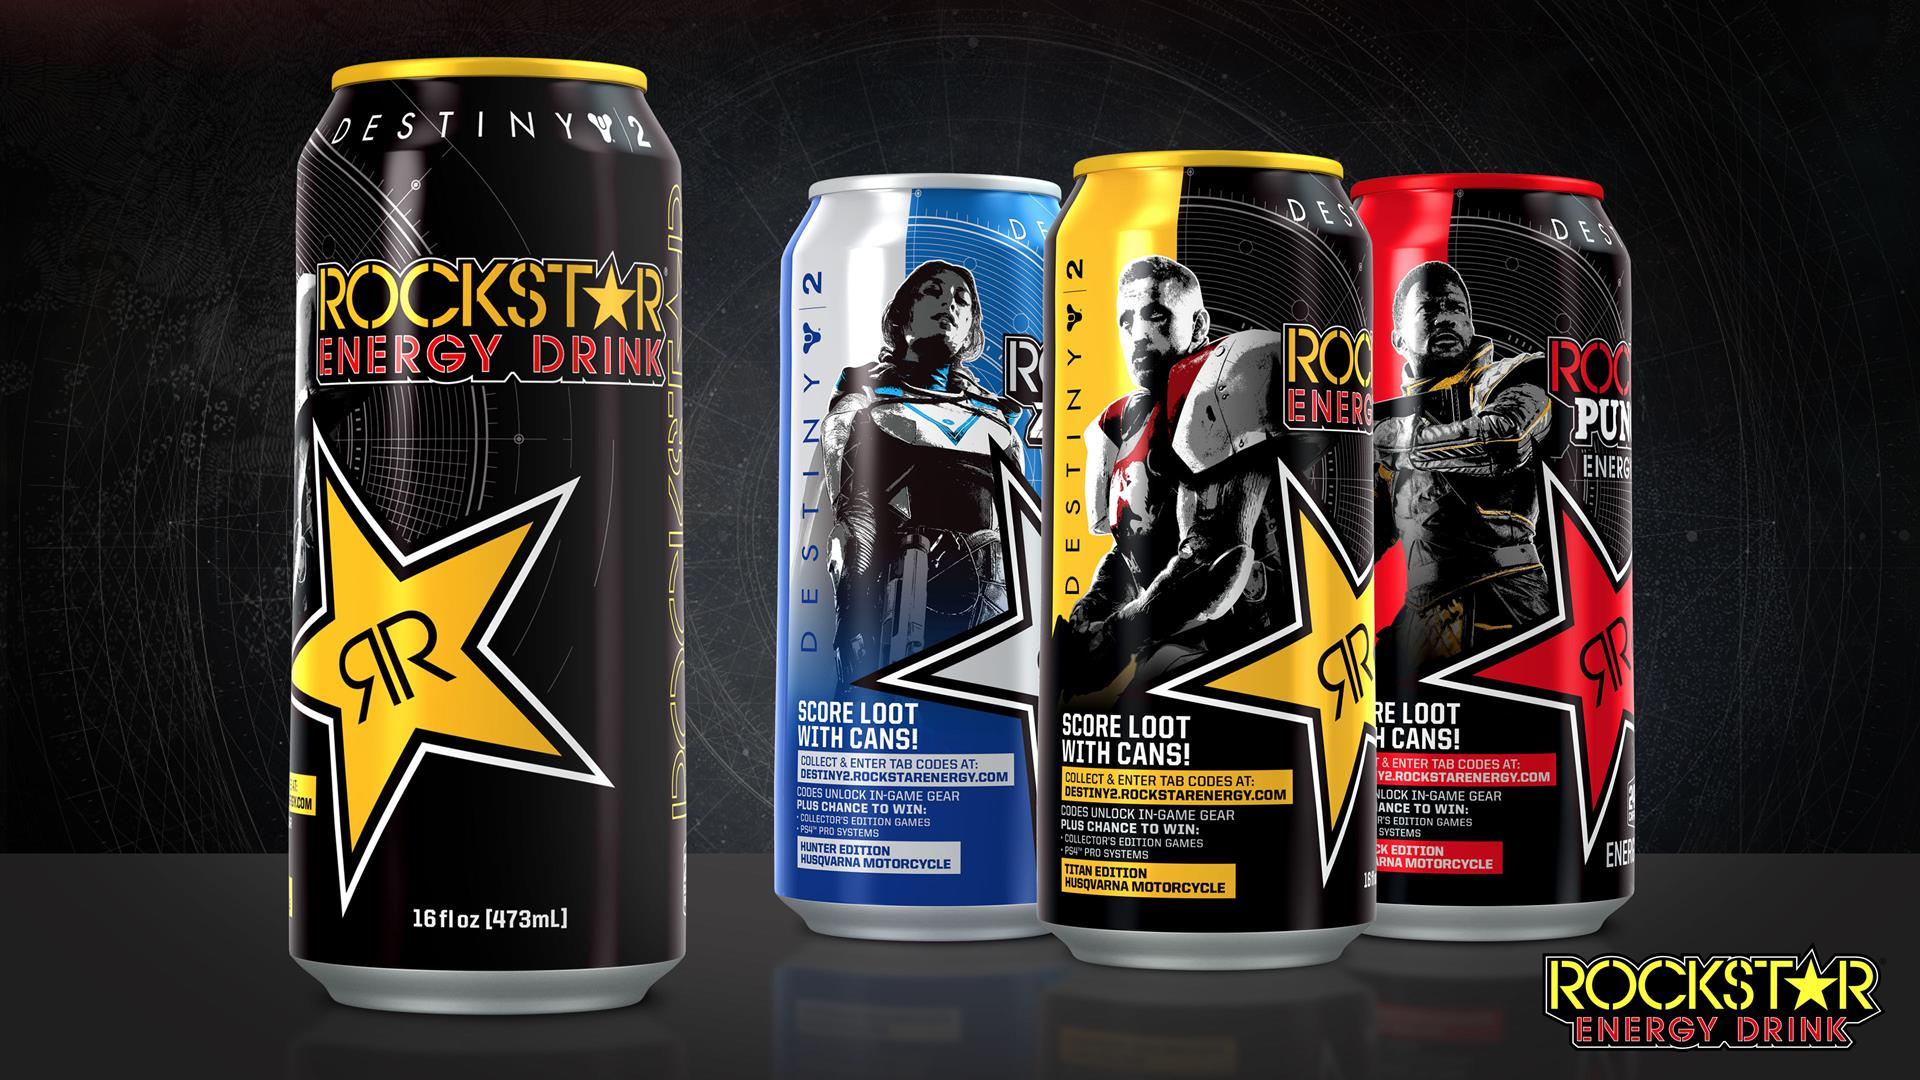 Rockstar Inc partners with Destiny 2 launch for marketing push